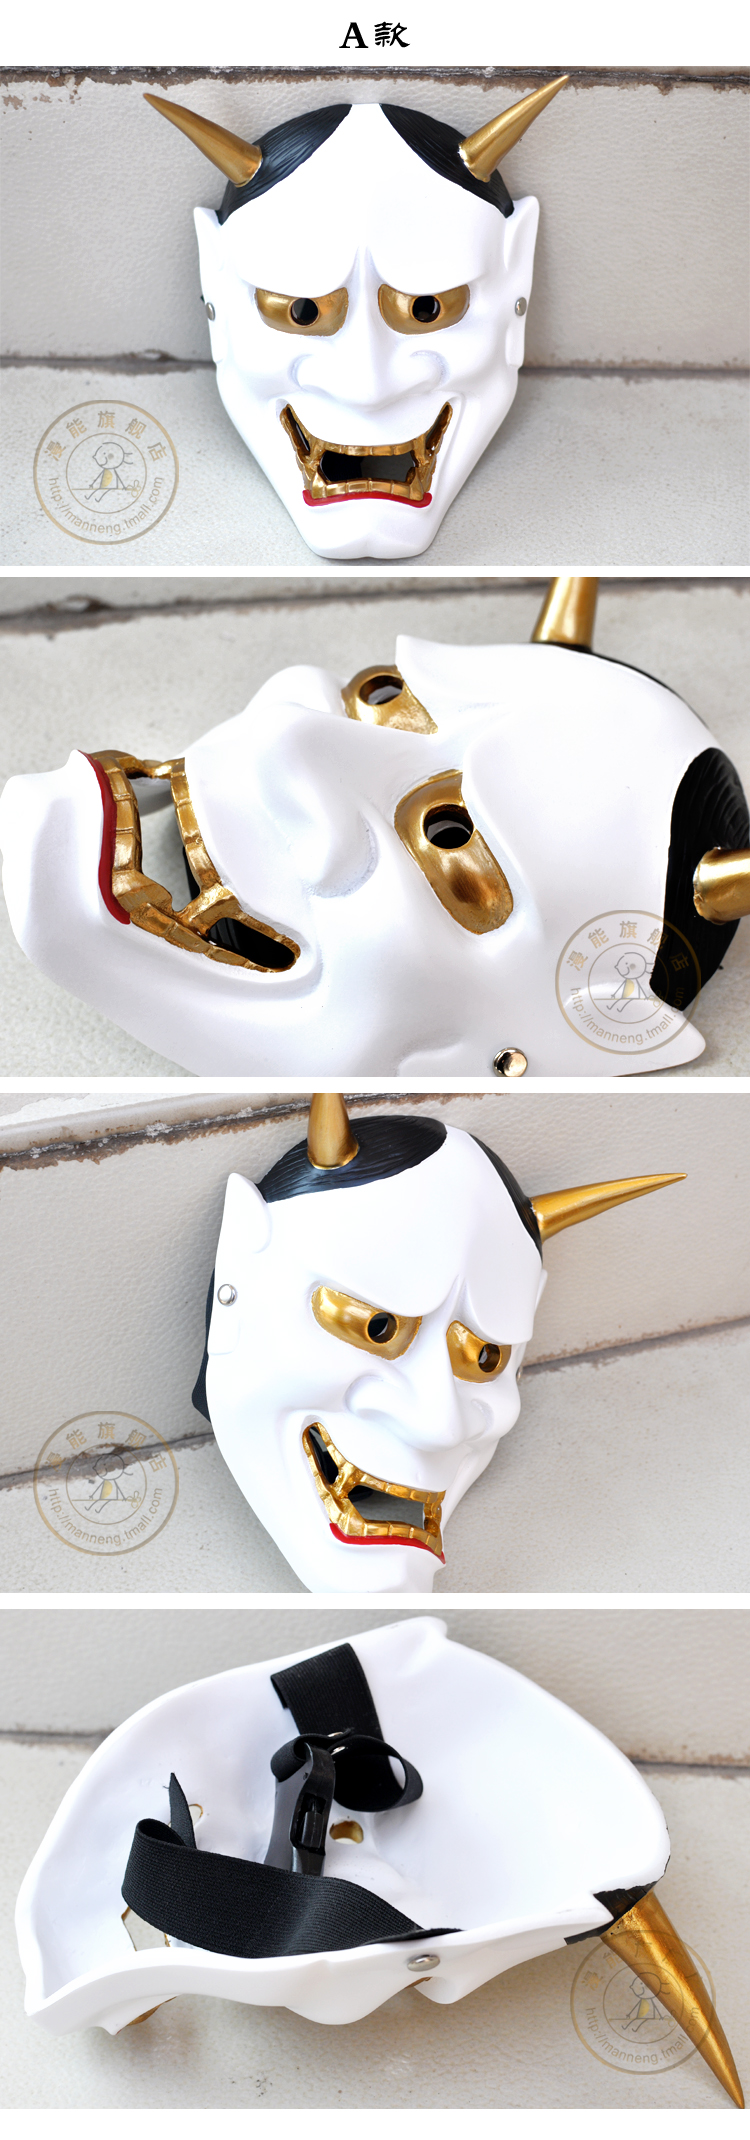 Man can Cartton Creative Decorative Naruto Cosplay Mask